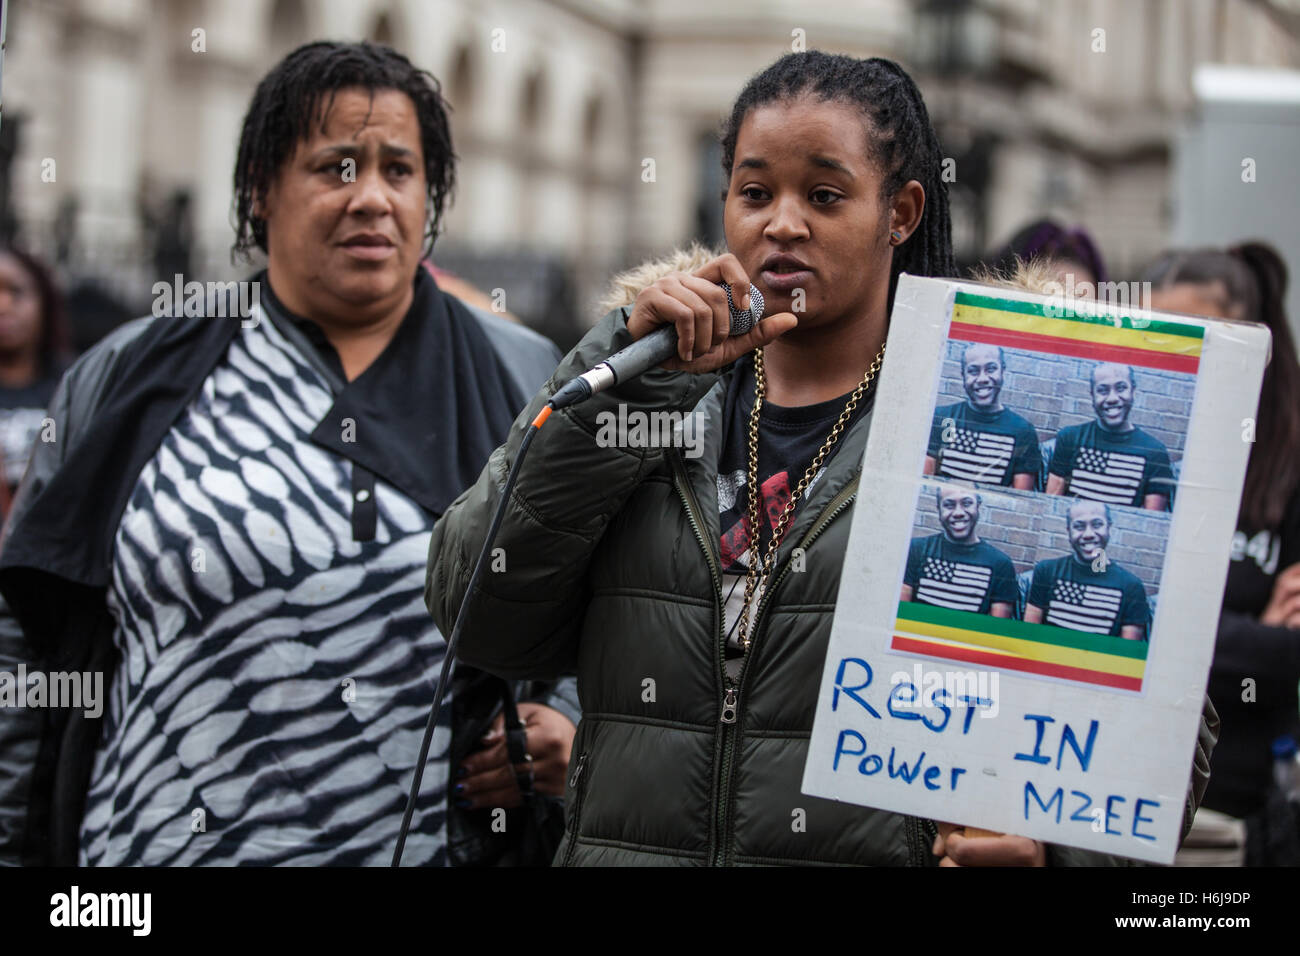 London, UK. 29th October, 2016. The cousin of Mzee Mohammed stands with his mother as she addresses campaigners - Stock Image